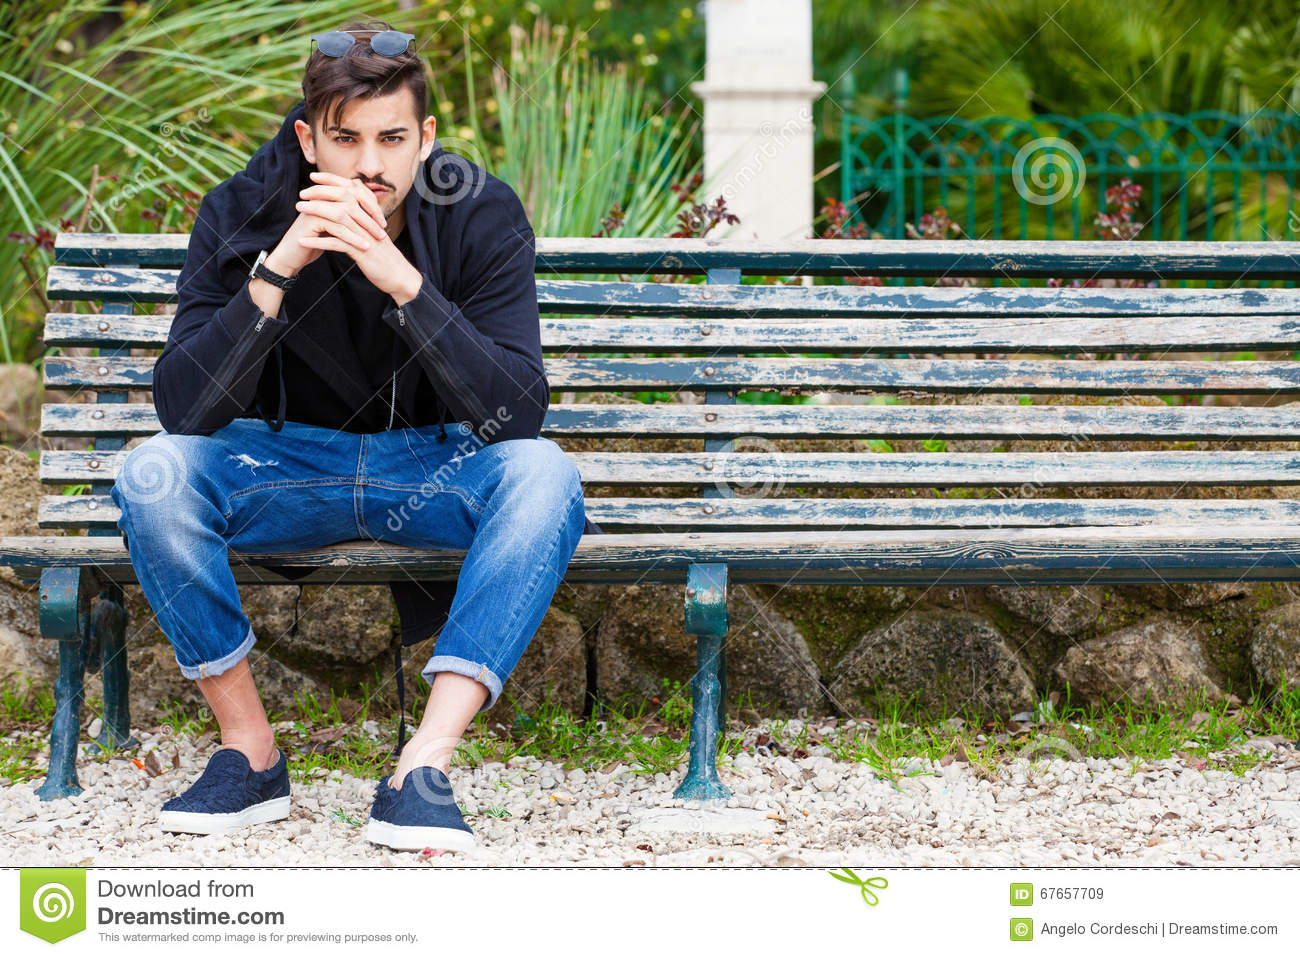 Boyfriend Waiting Handsome Young Man Model Sitting On The Bench Stock Photo Image 67657709